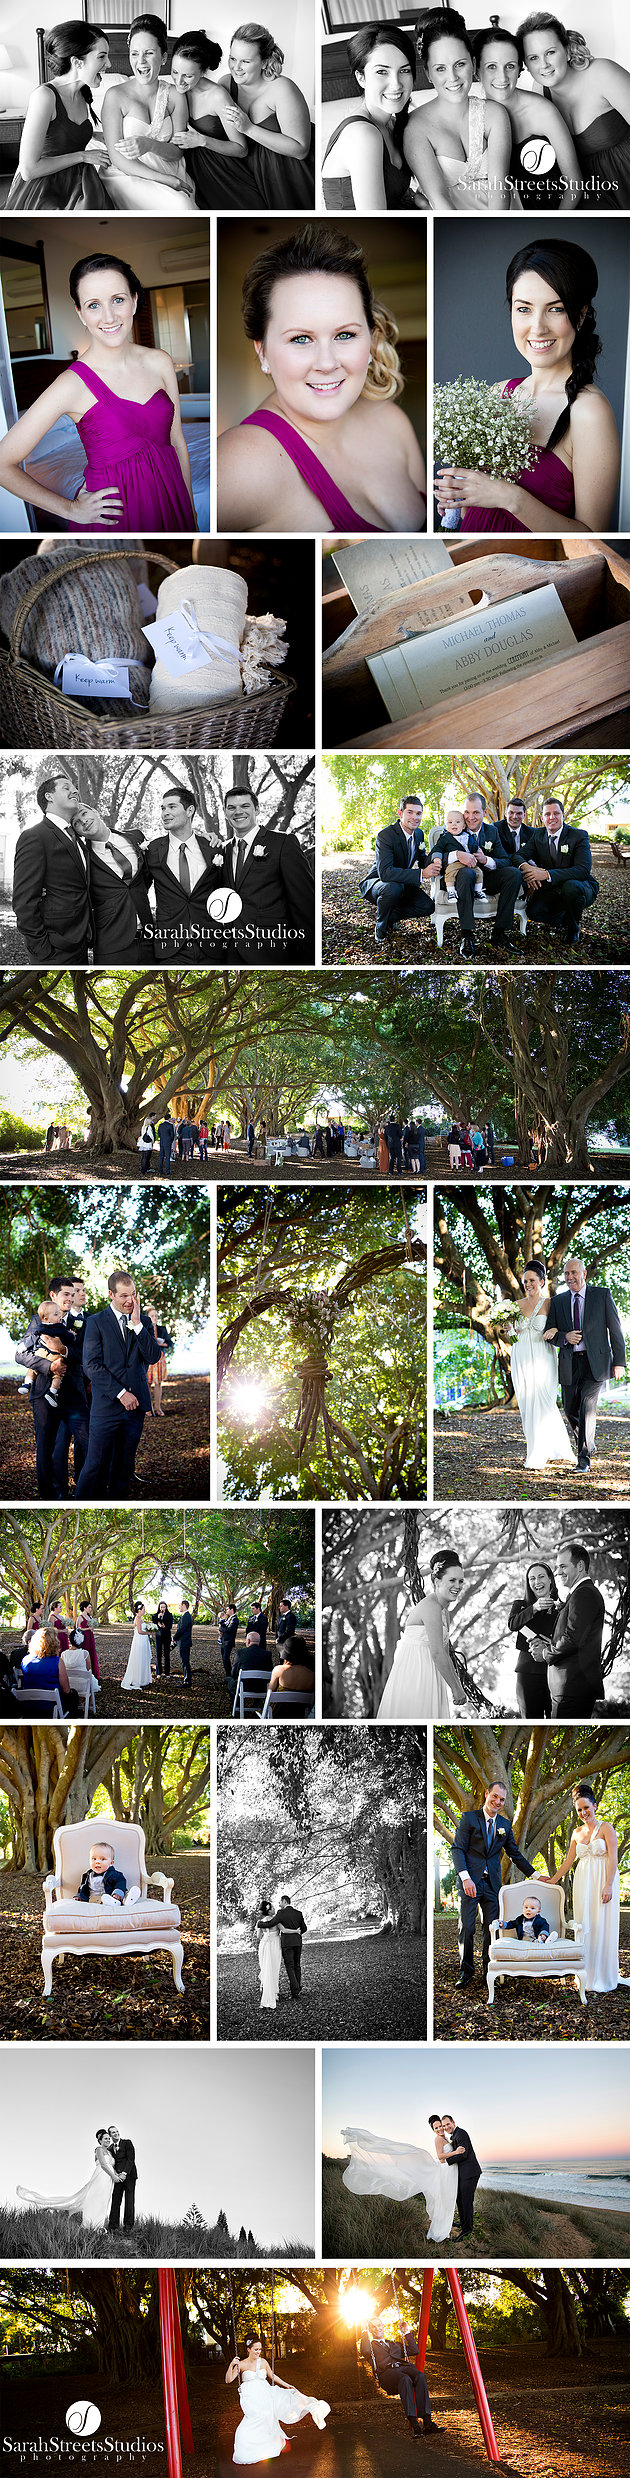 brisbane wedding photography, brisbane wedding photographer, sunshine coast wedding photographer